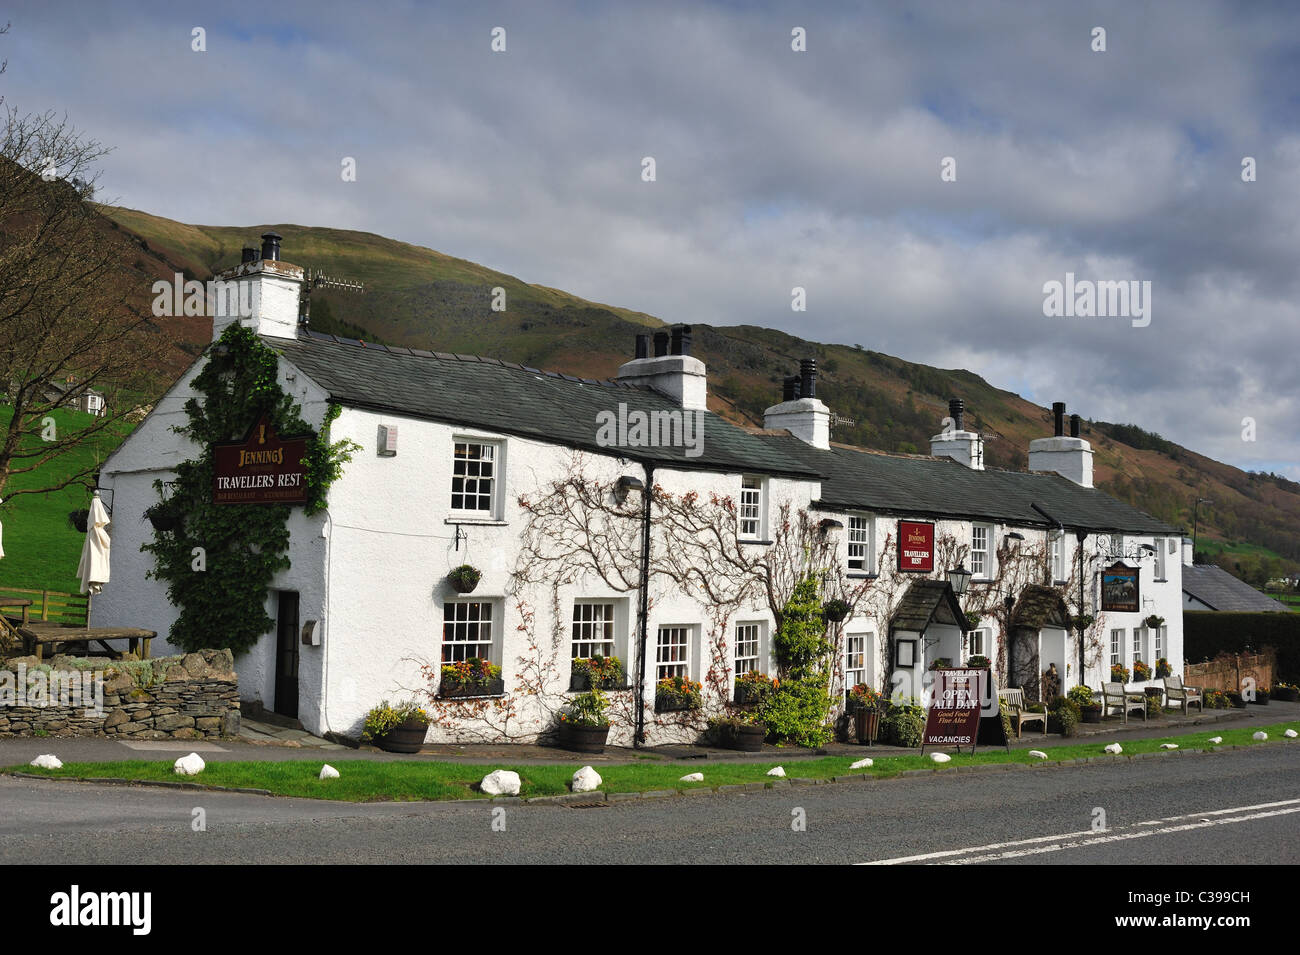 The Travellers Rest Hotel, nr. Grasmere in the Lake District - Stock Image